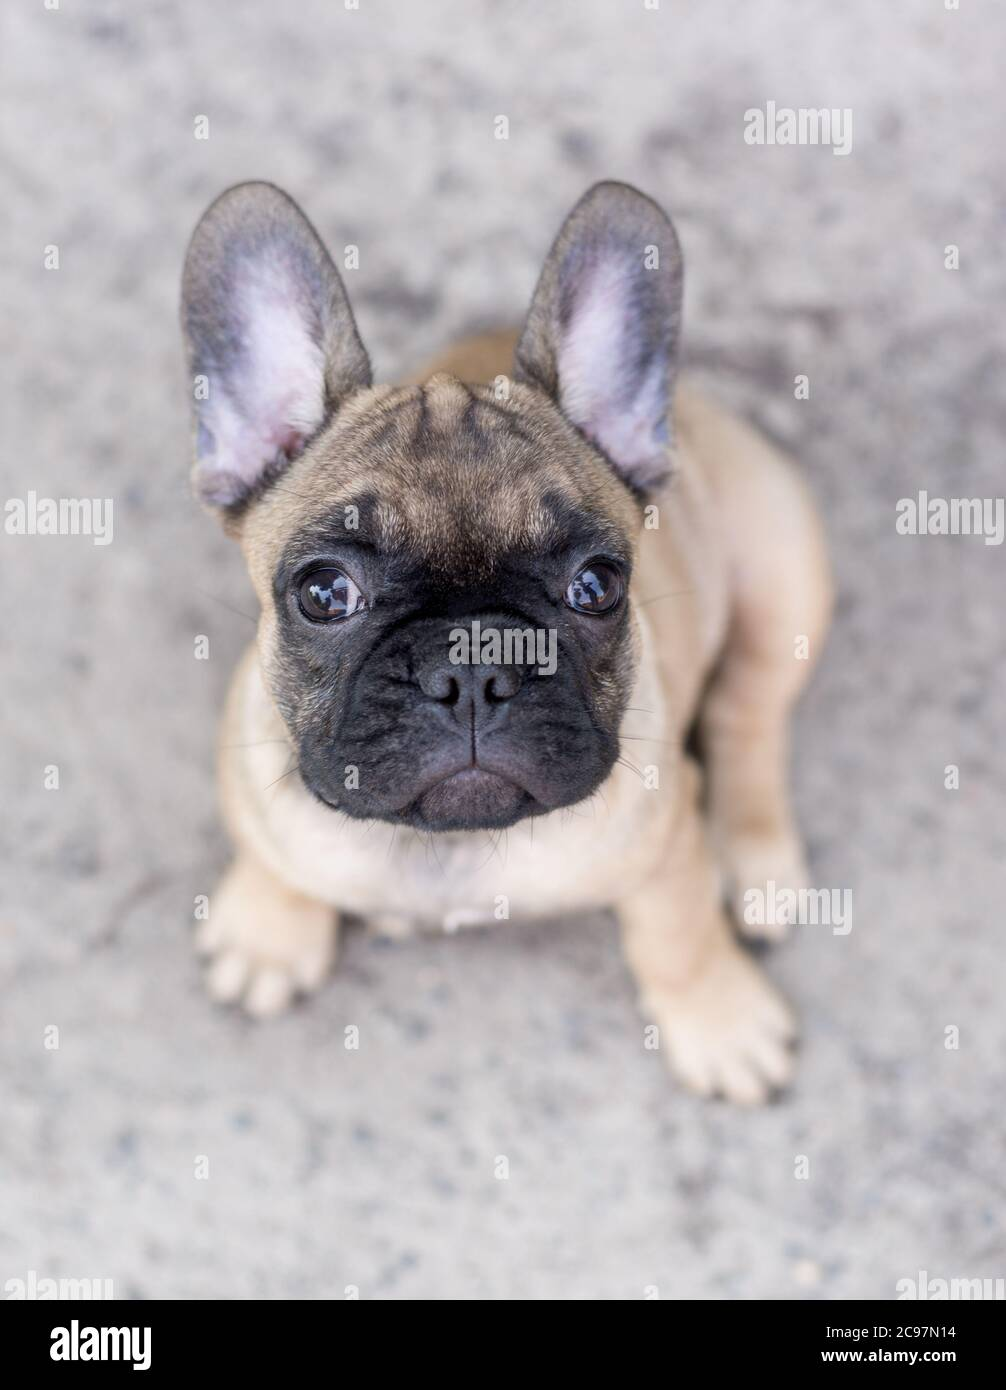 Adorable French Bulldog Puppy Beige Color Portrait Of Cute Little Puppy Stock Photo Alamy